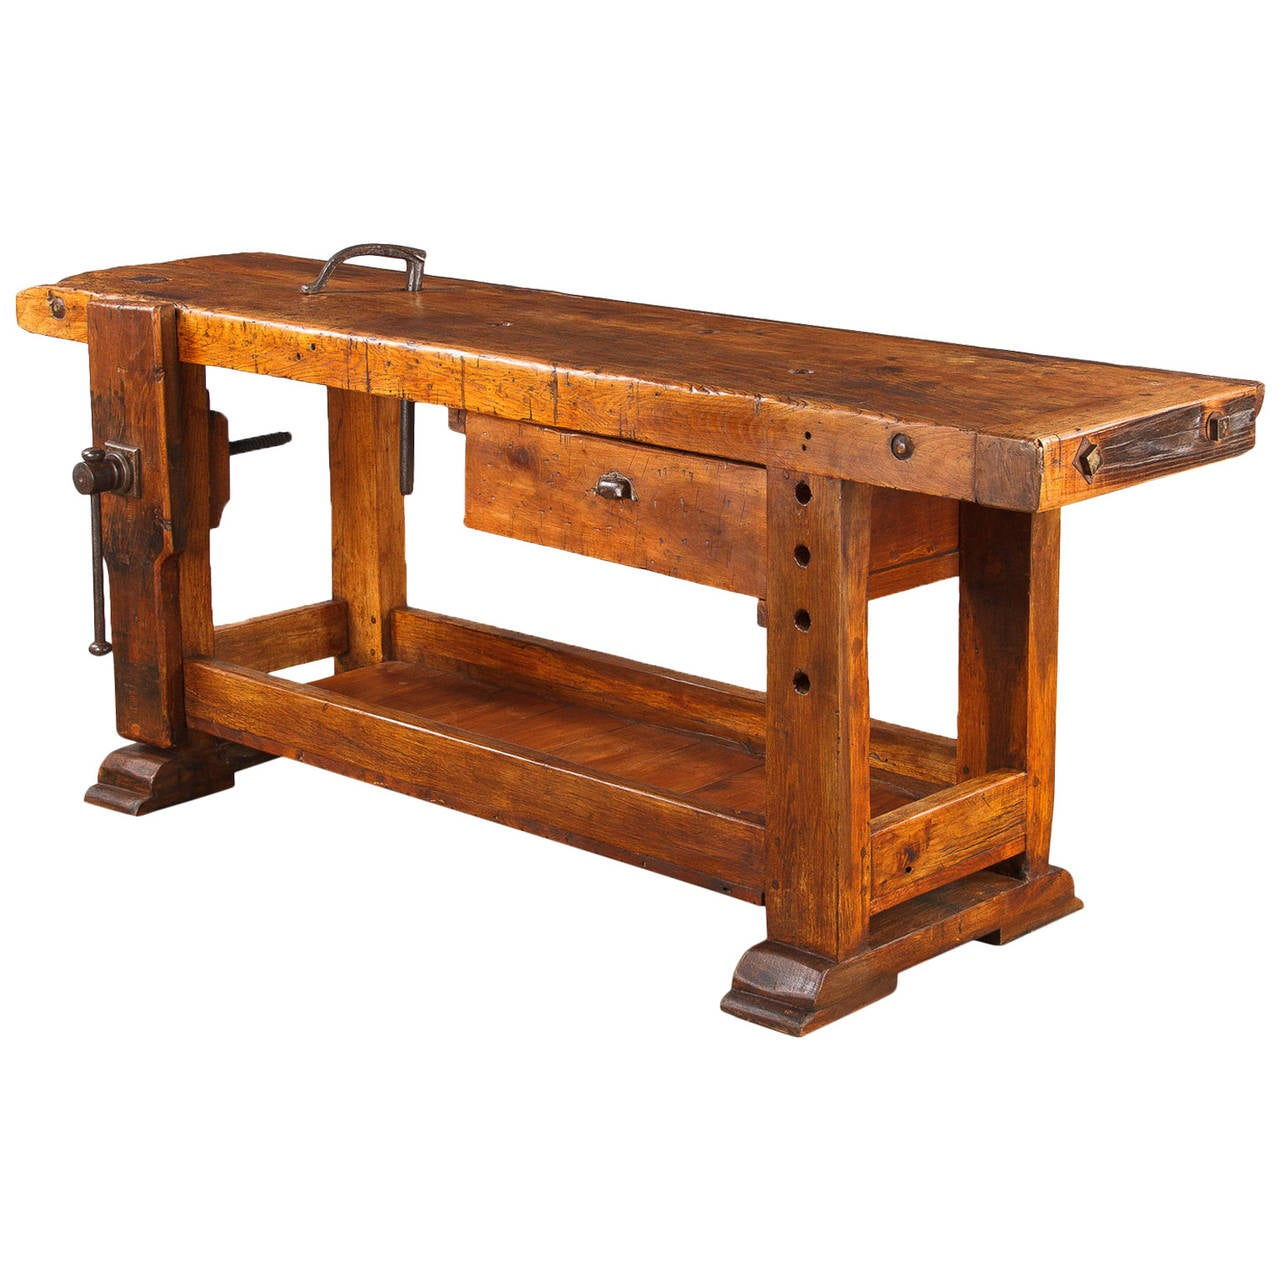 French Industrial Walnut Carpenter 39 S Workbench Late 1800s At 1stdibs